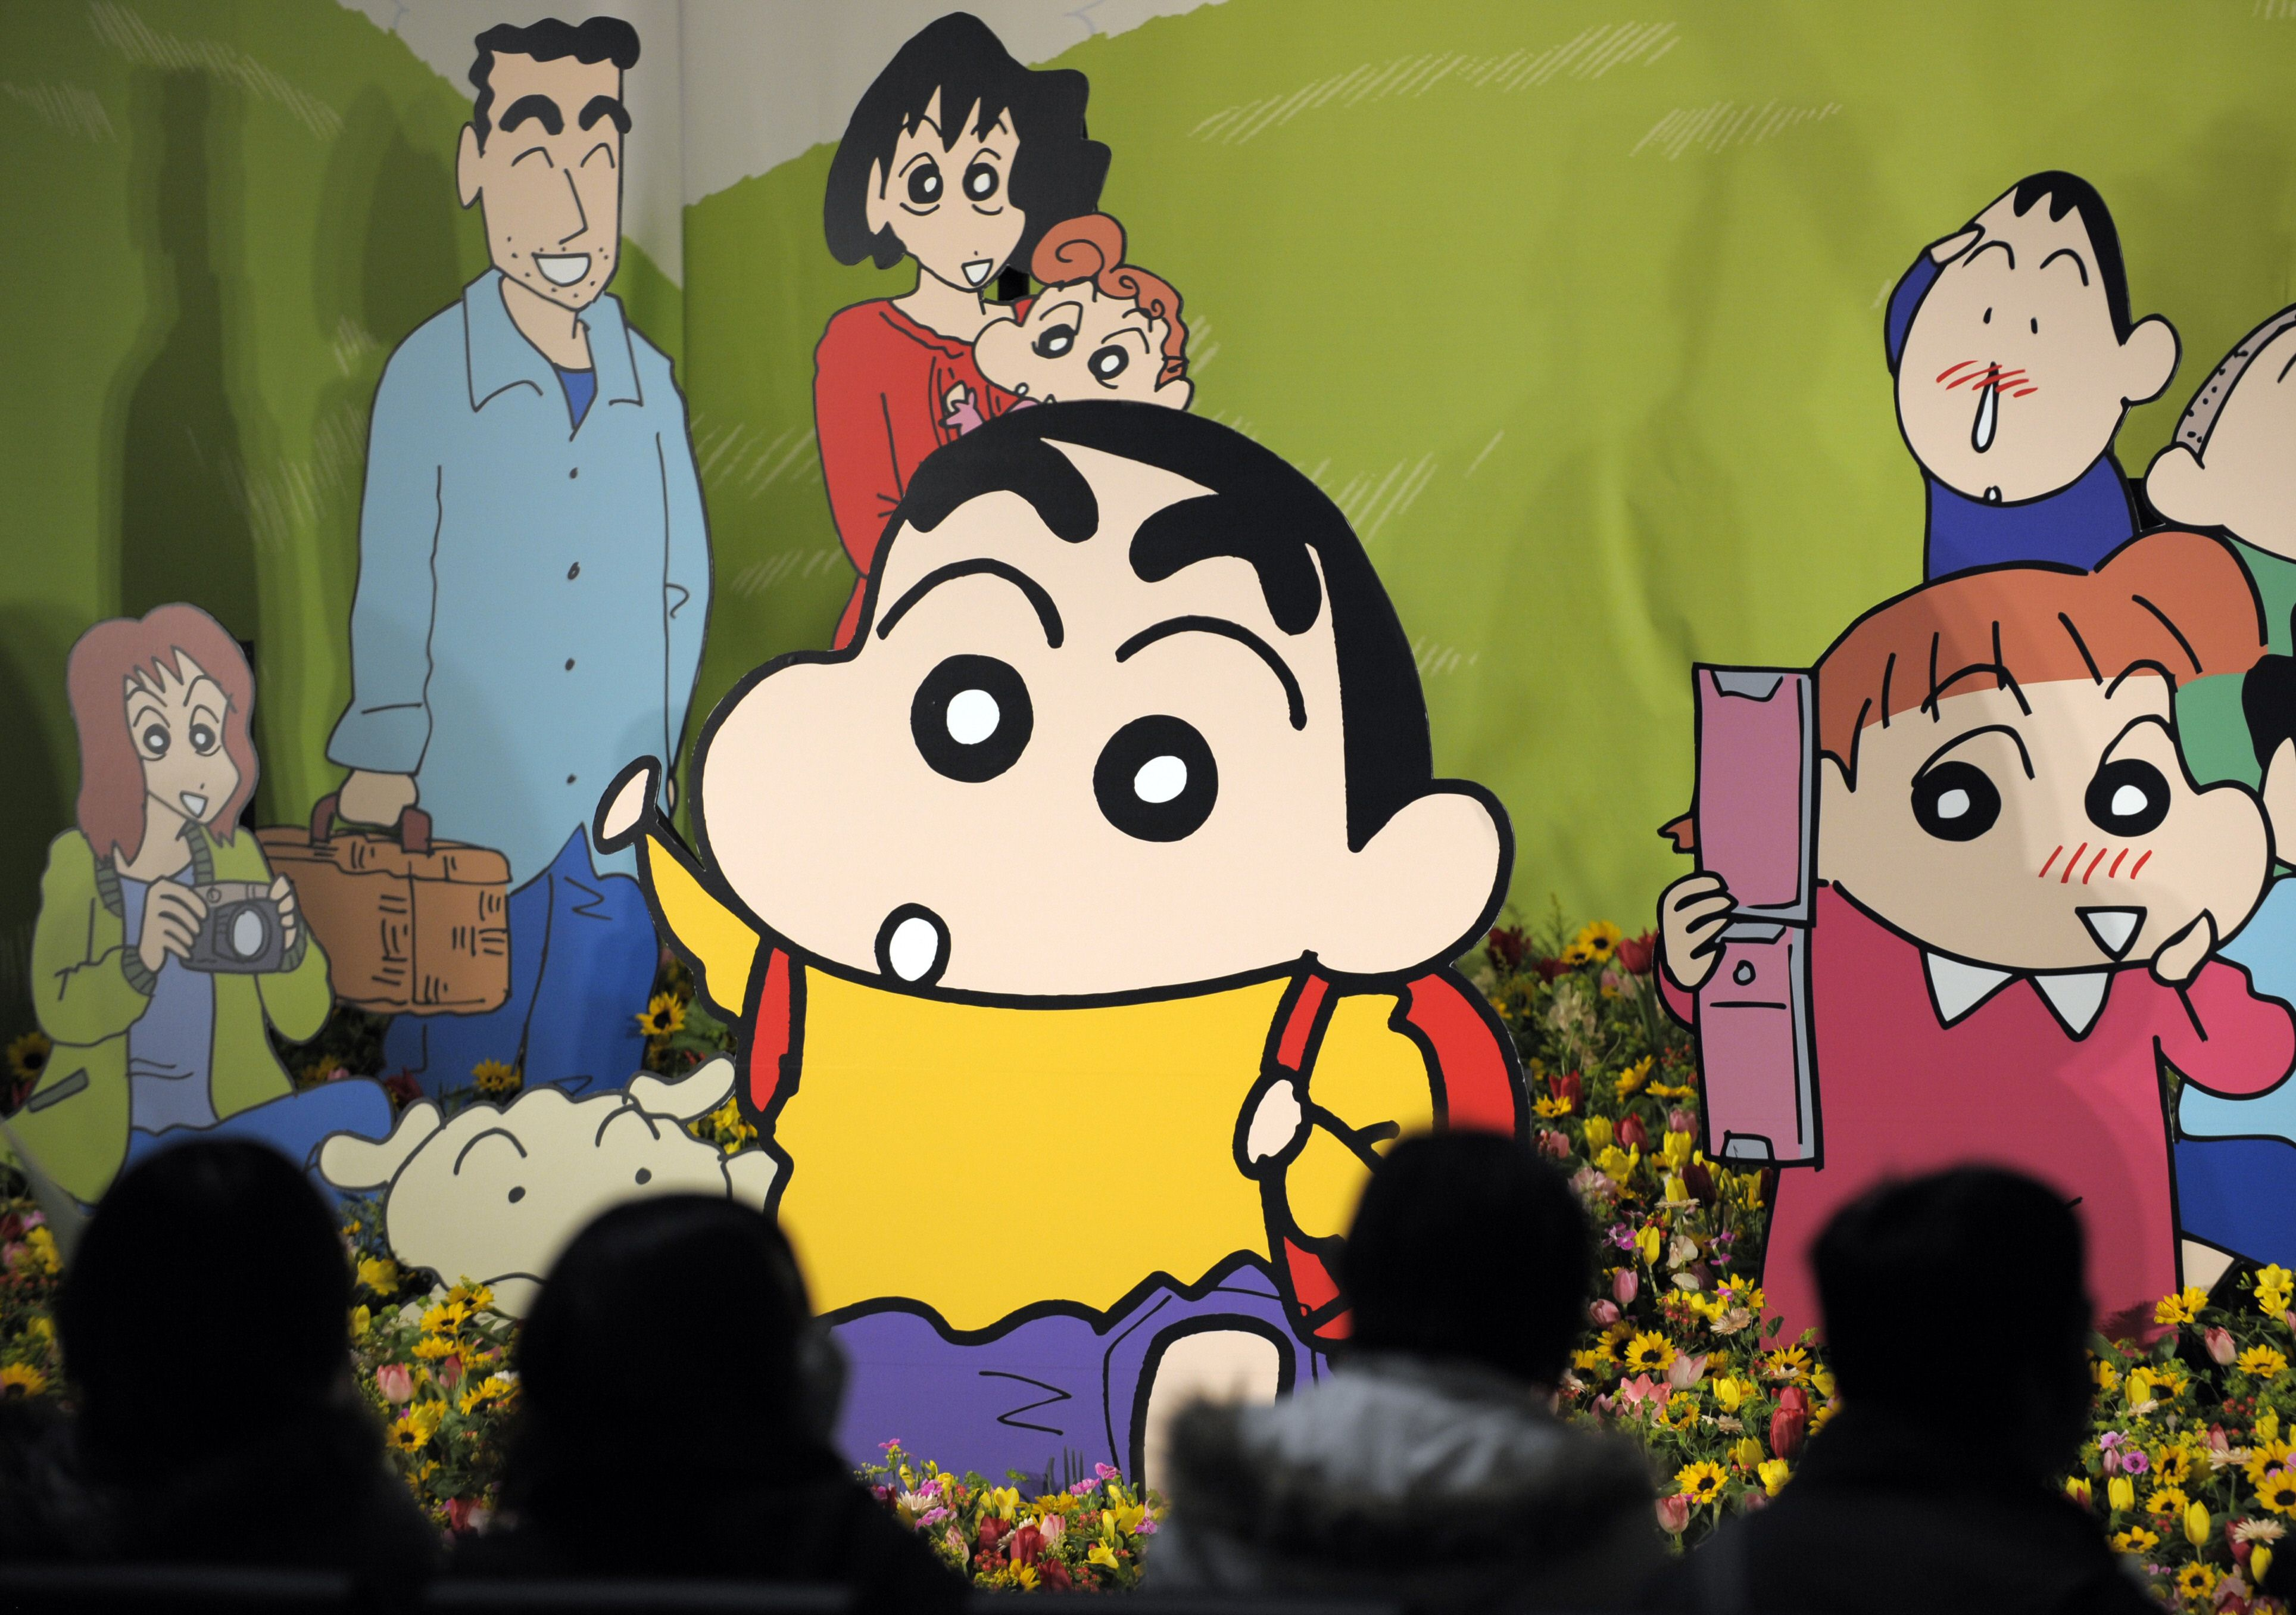 children's anime series 'crayon shin-chan' labeled as porn in